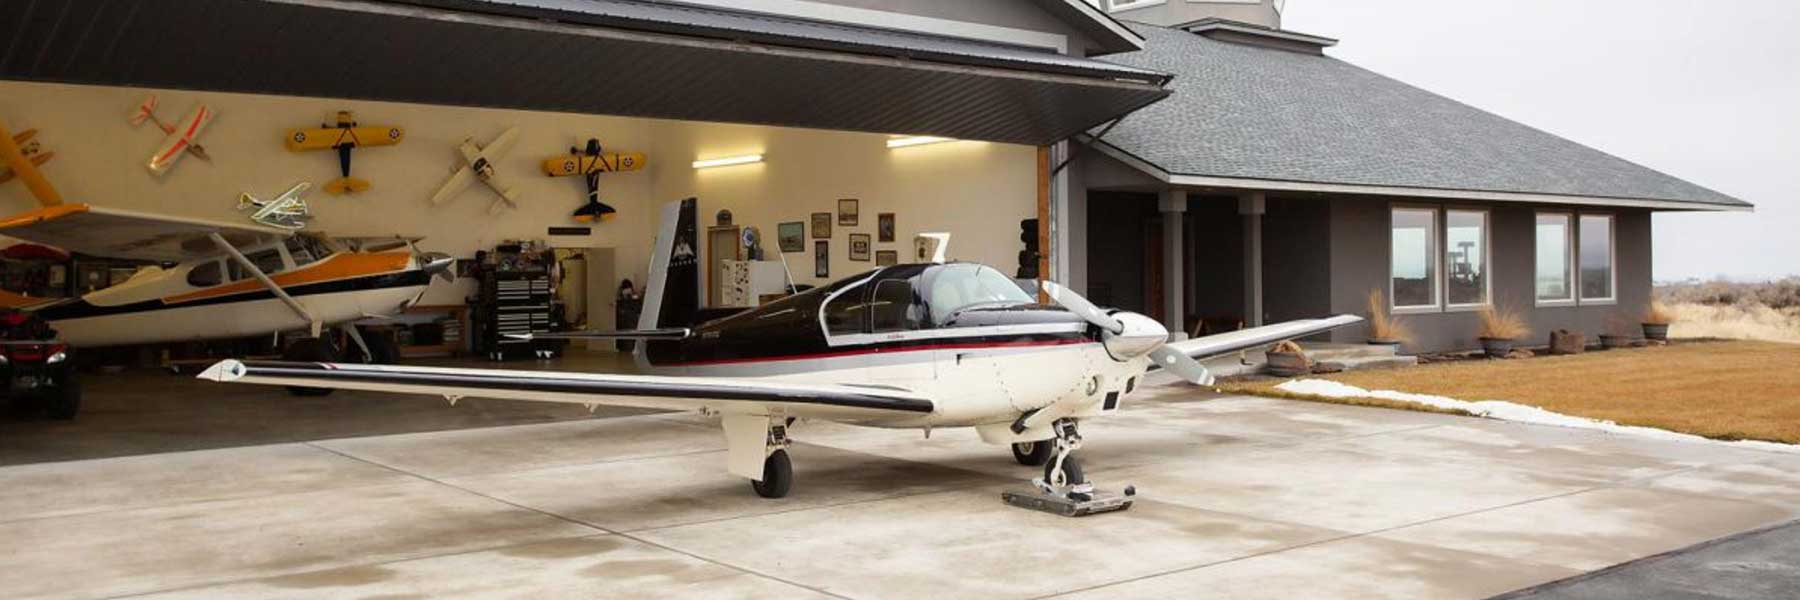 aviation aircraft and parts for sale